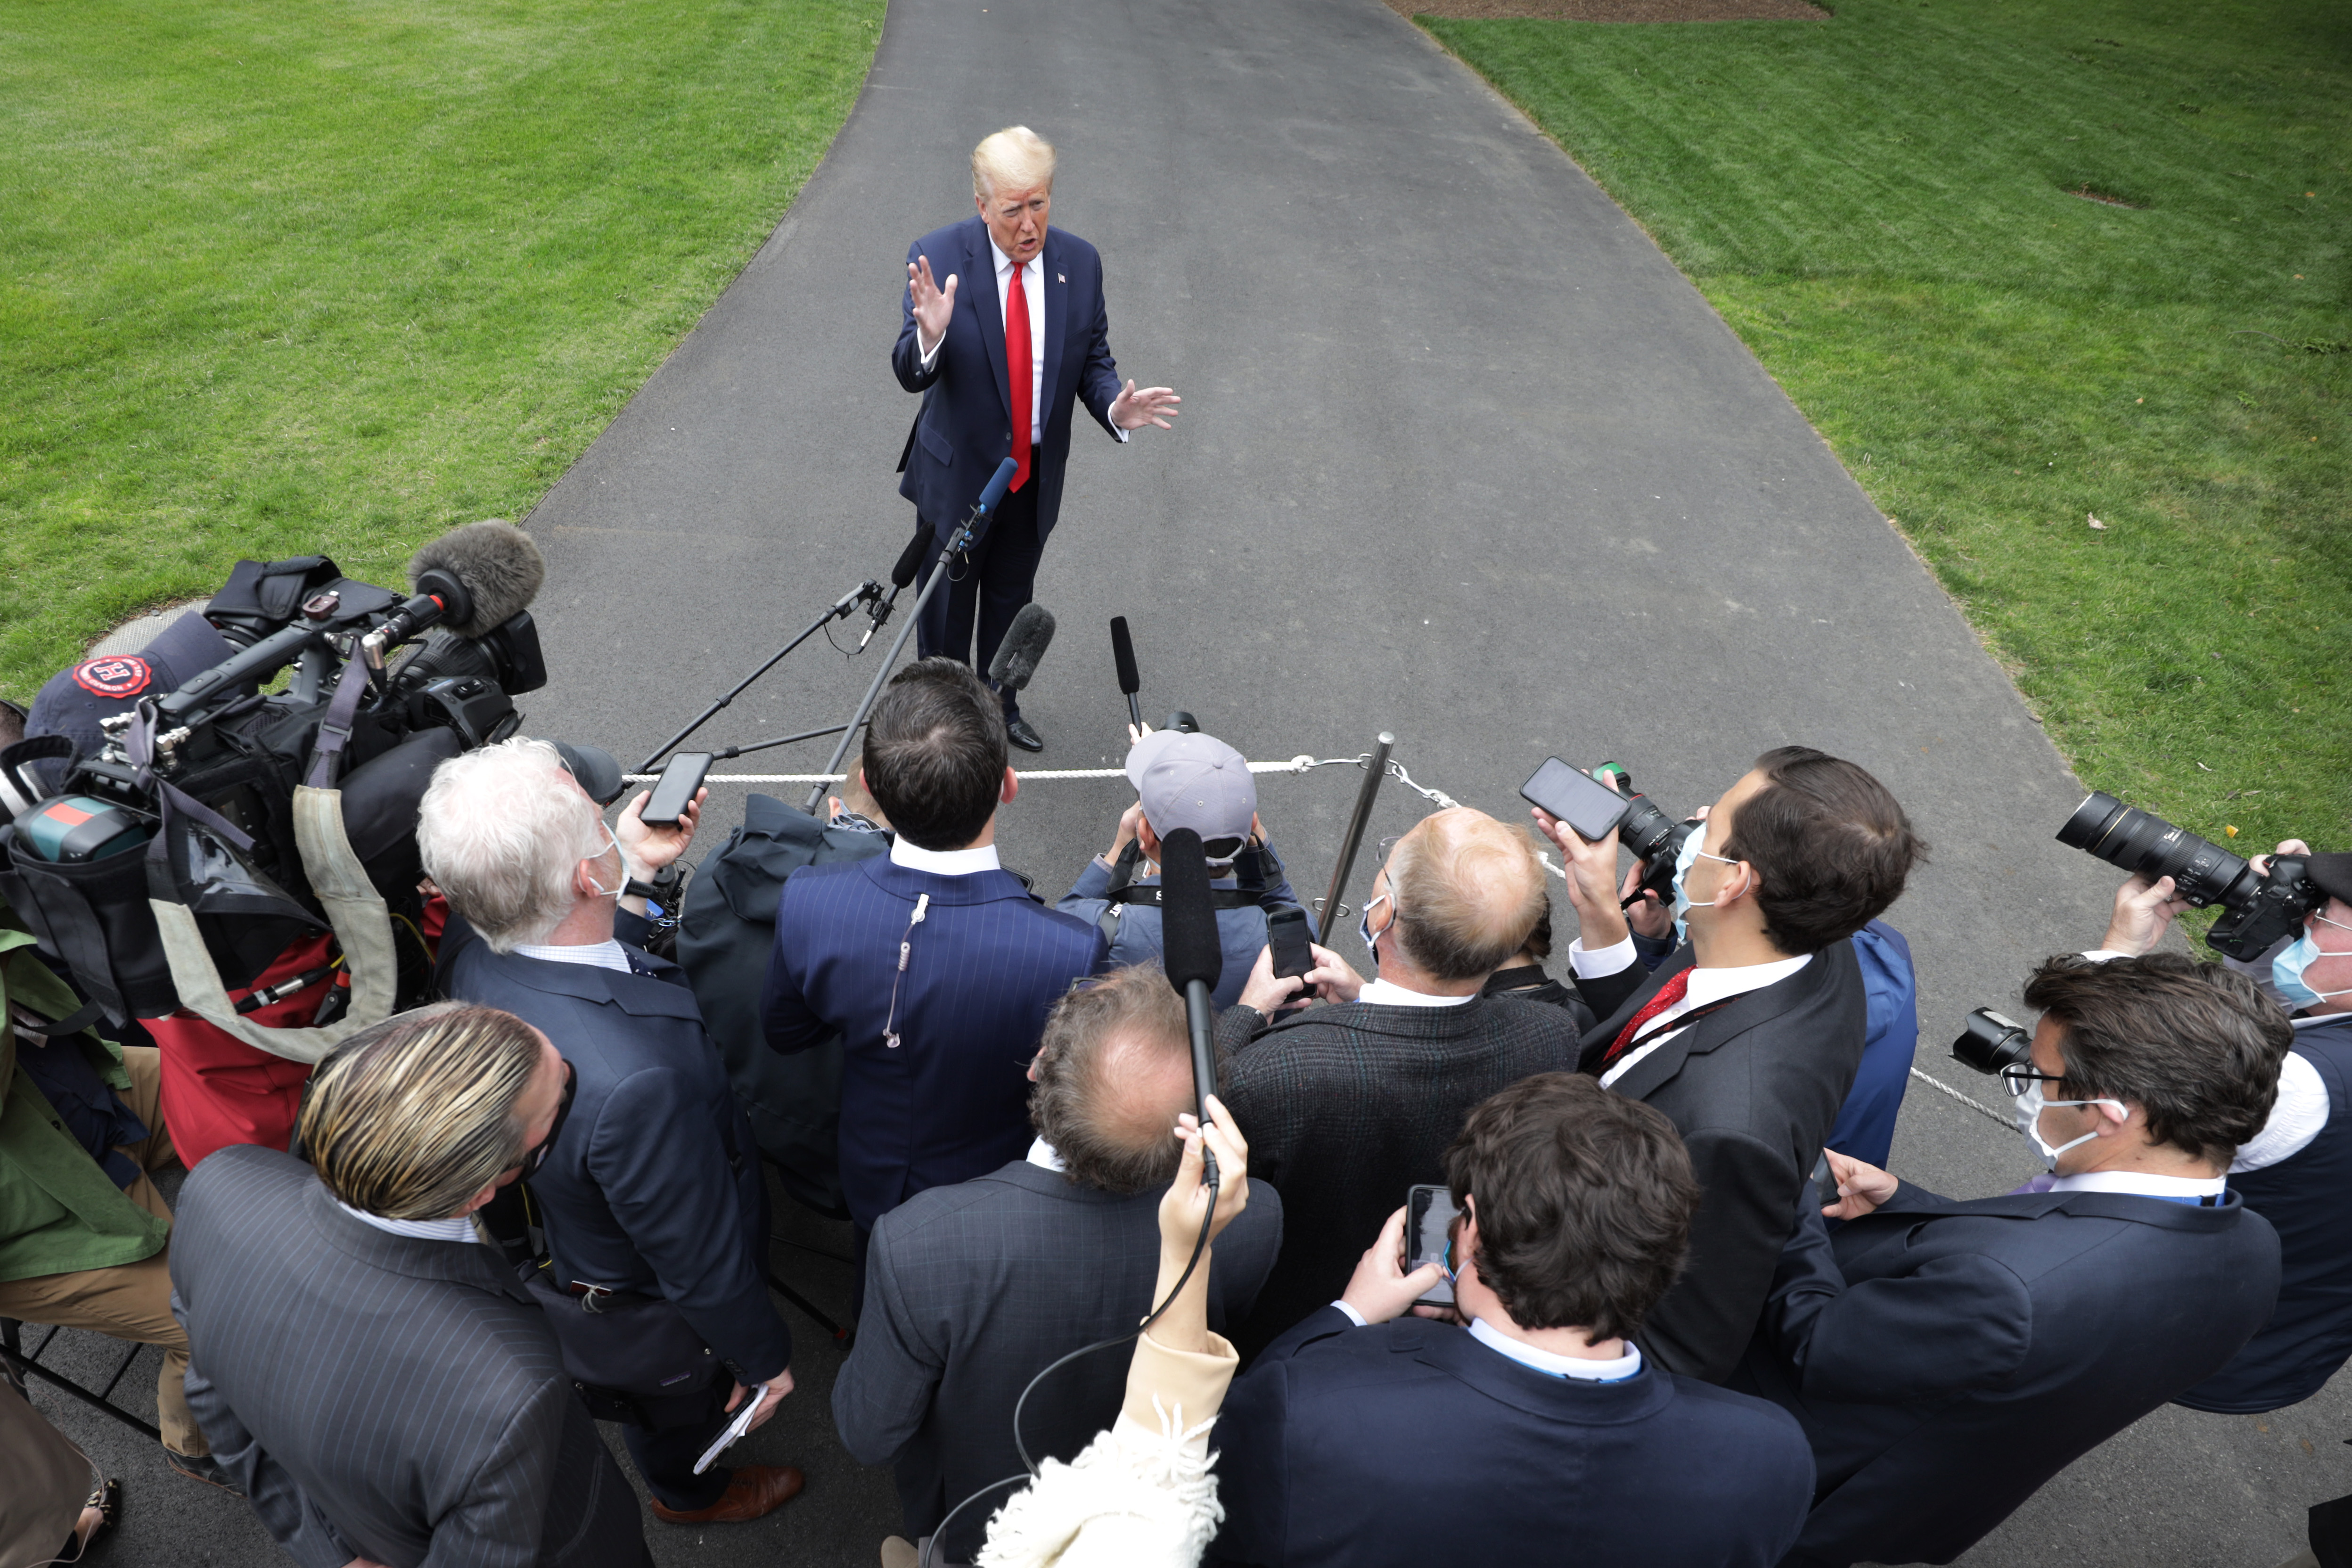 WASHINGTON, DC - MAY 21: U.S. President Donald Trump speaks to the press on the South Lawn of the White House prior to departing on Marine One May 21, 2020 in Washington, DC. President Trump is scheduled to visit a Ford manufacturing plant that is currently producing ventilators in Michigan. (Photo by Alex Wong/Getty Images)